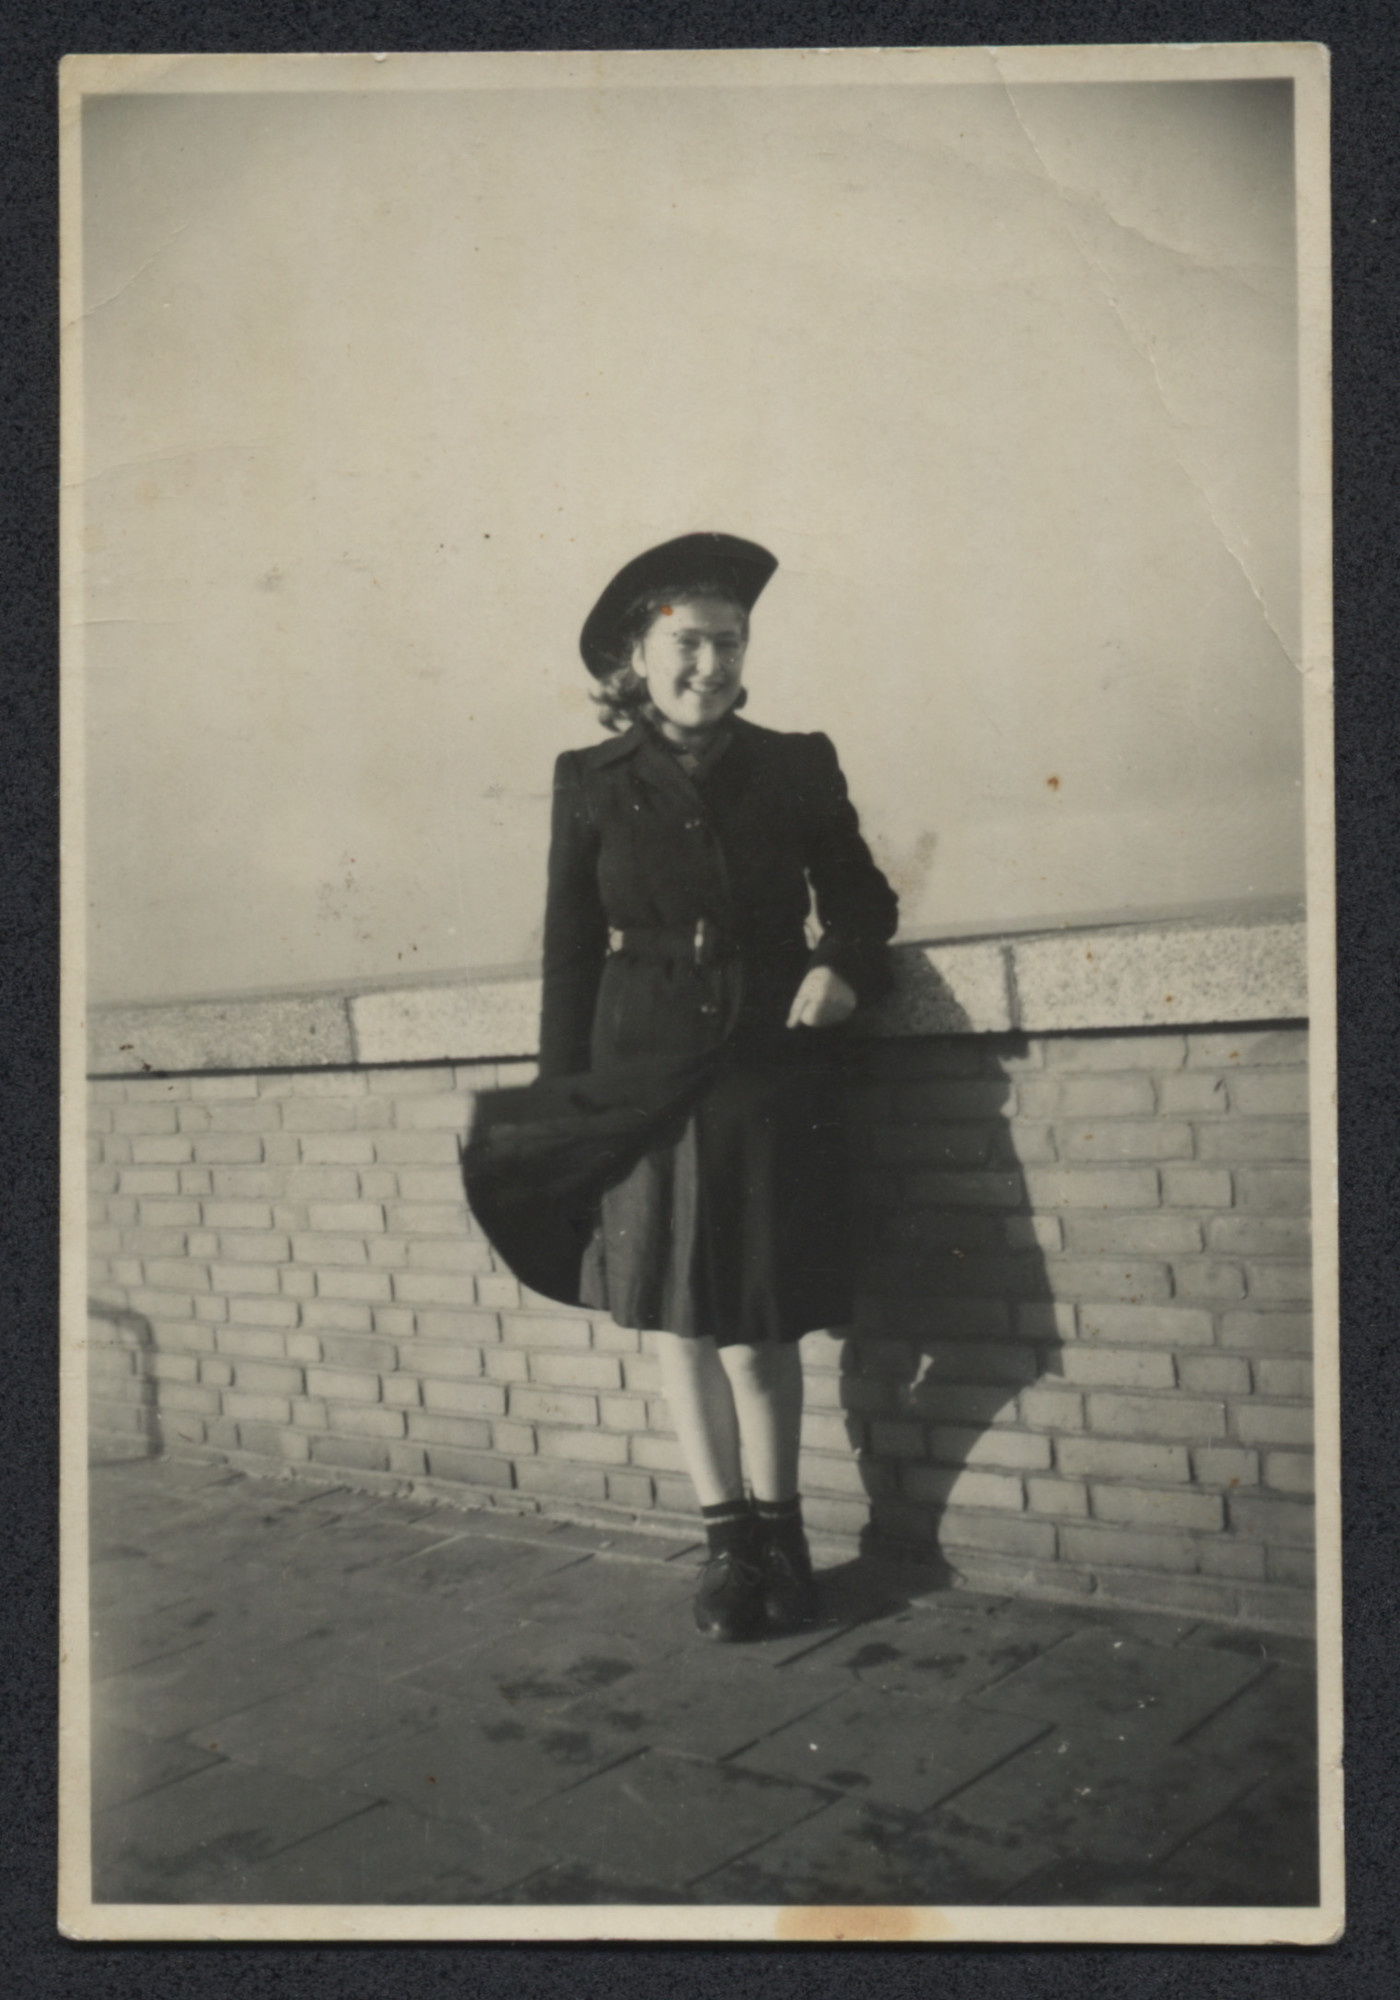 Elly van Leeuwen, poses by a brick wall immediately after the war.